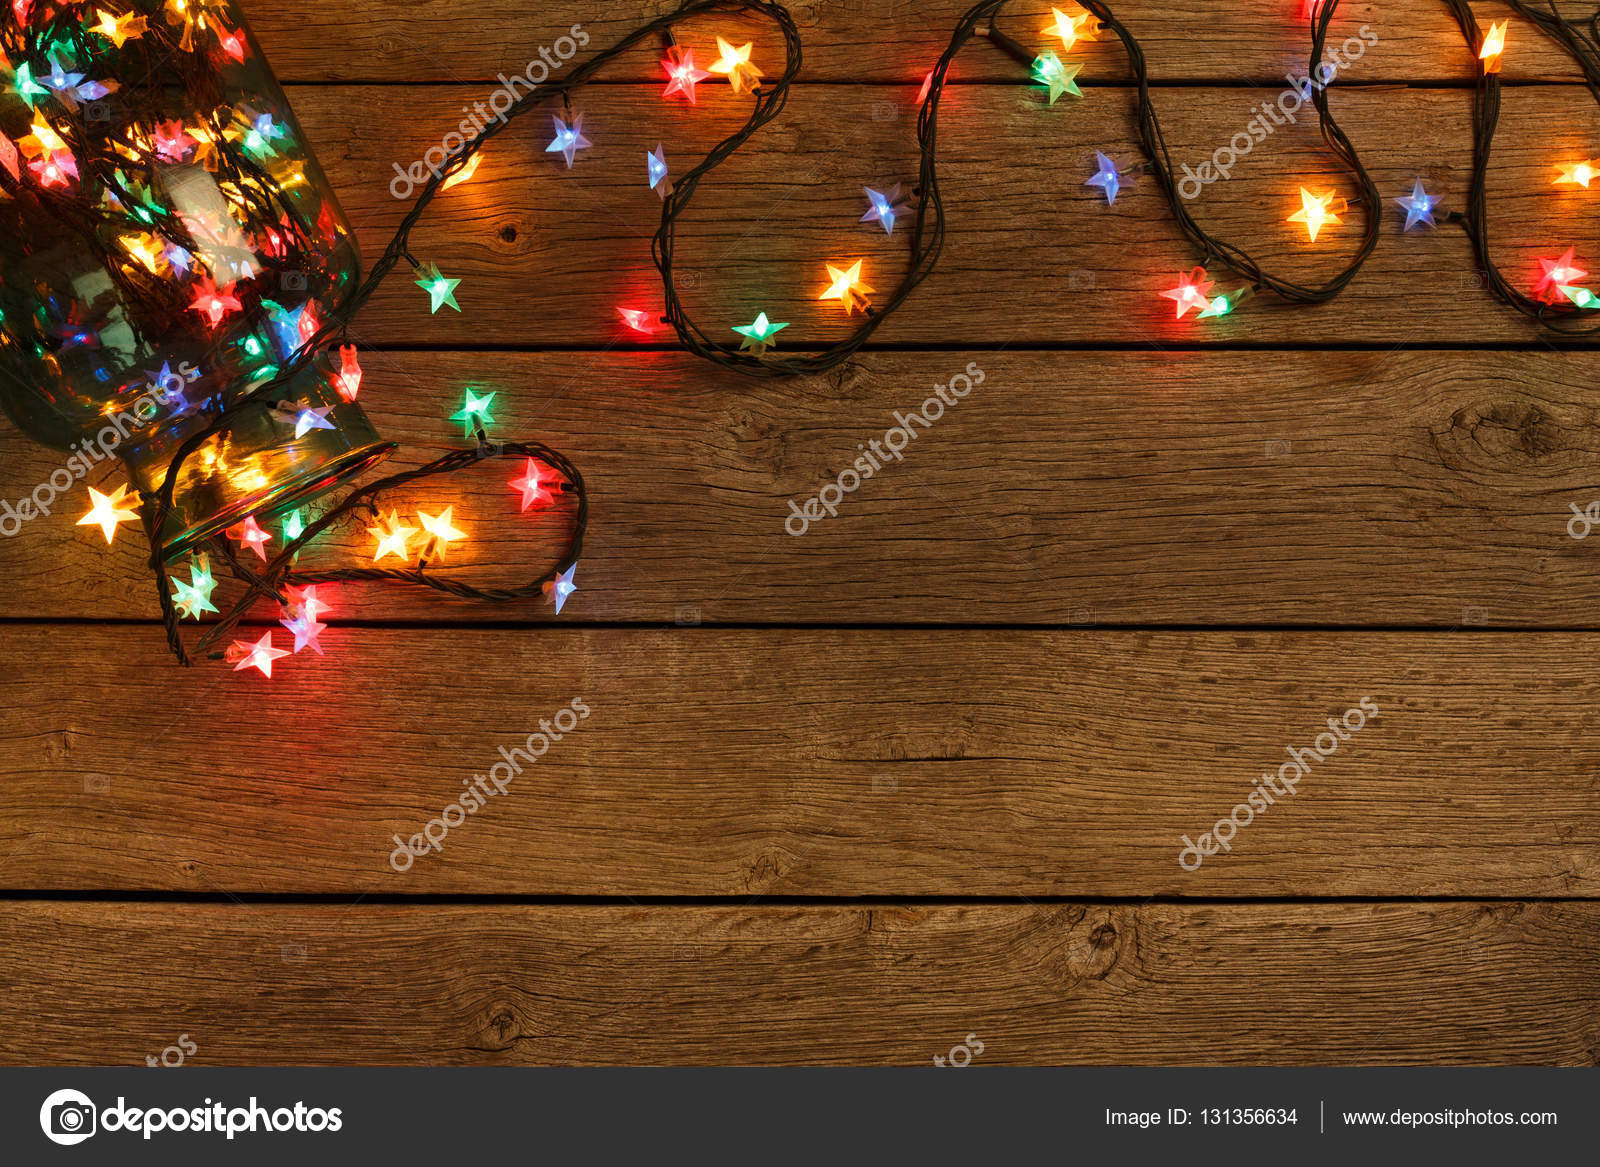 Christmas Lights Background Holiday Shiny Sparkling Star Garland Border Spread From Glass Jar Top View On Brown Wooden Planks Surface